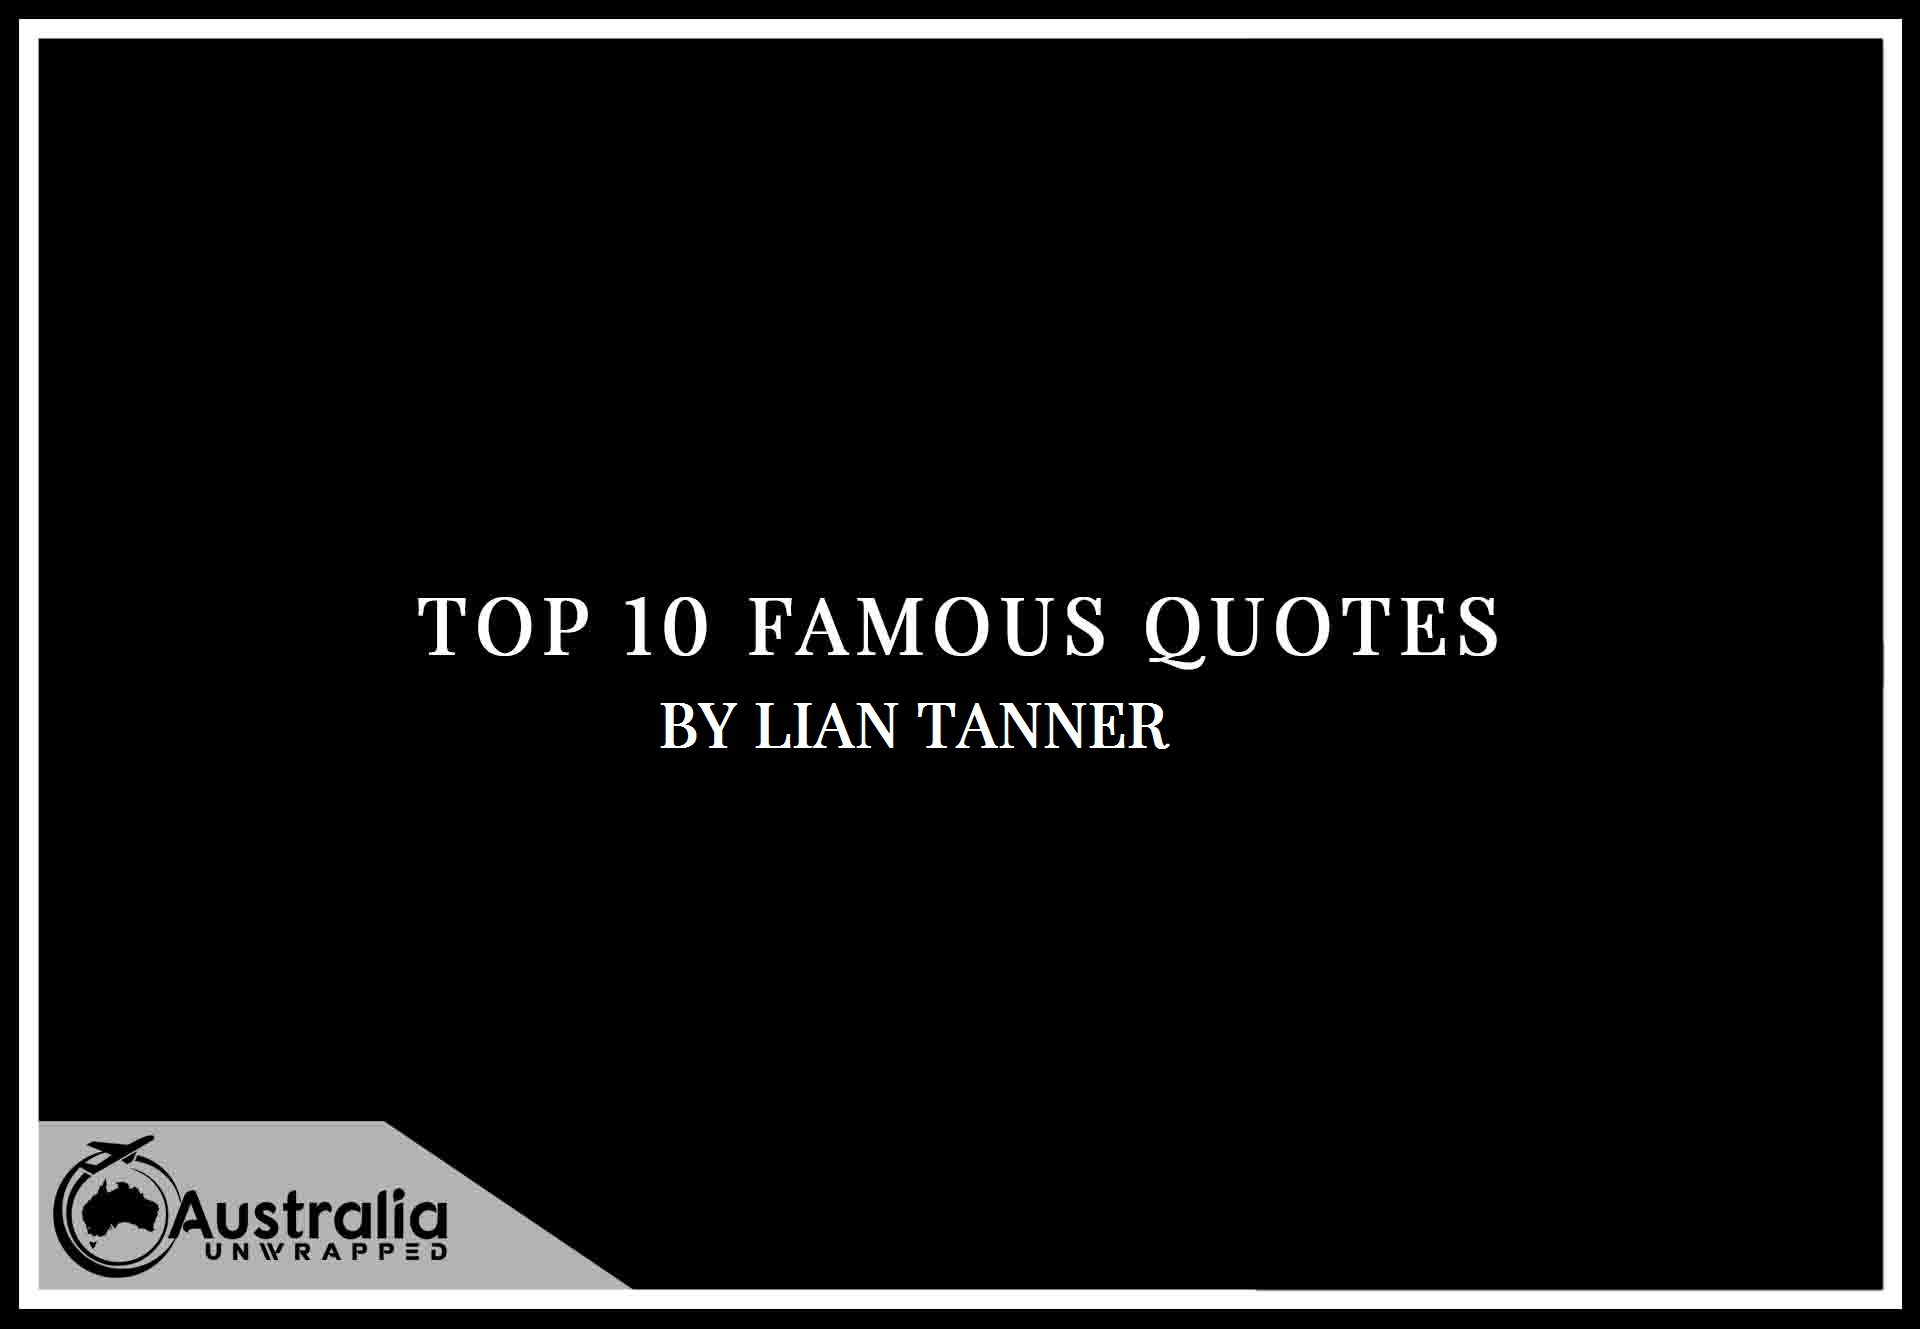 Lian Tanner's Top 10 Popular and Famous Quotes